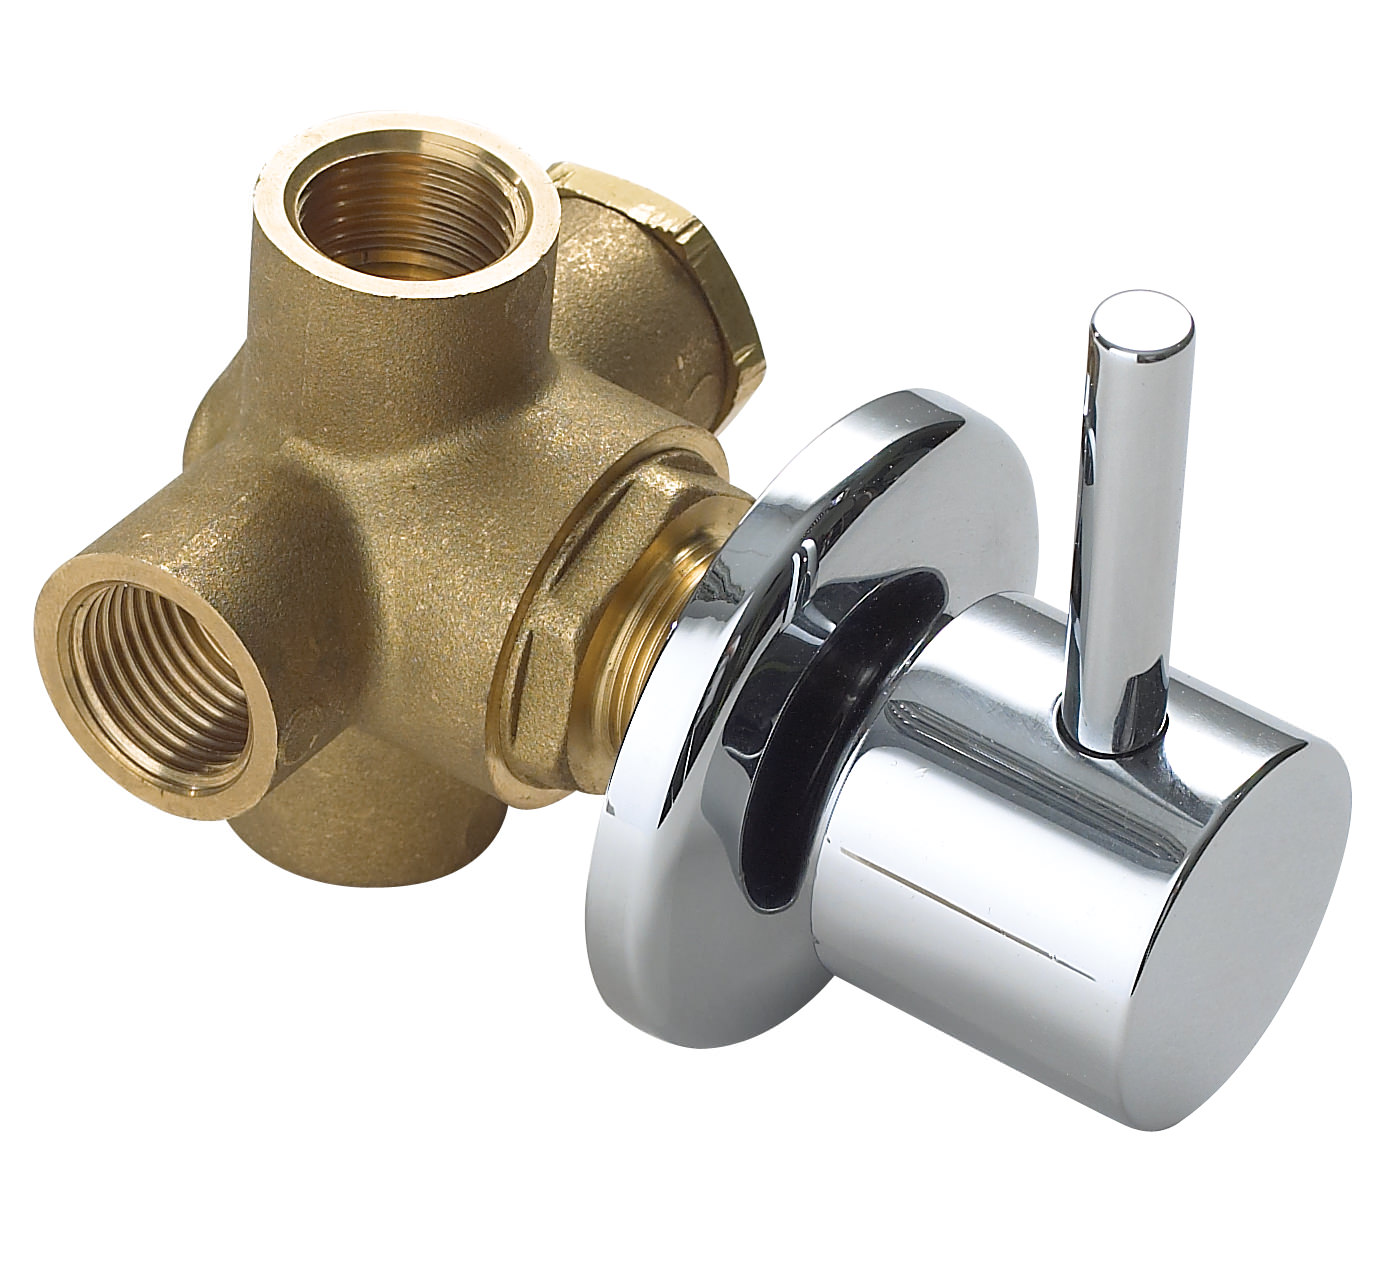 How To Rough In A Shower Mixer Valve